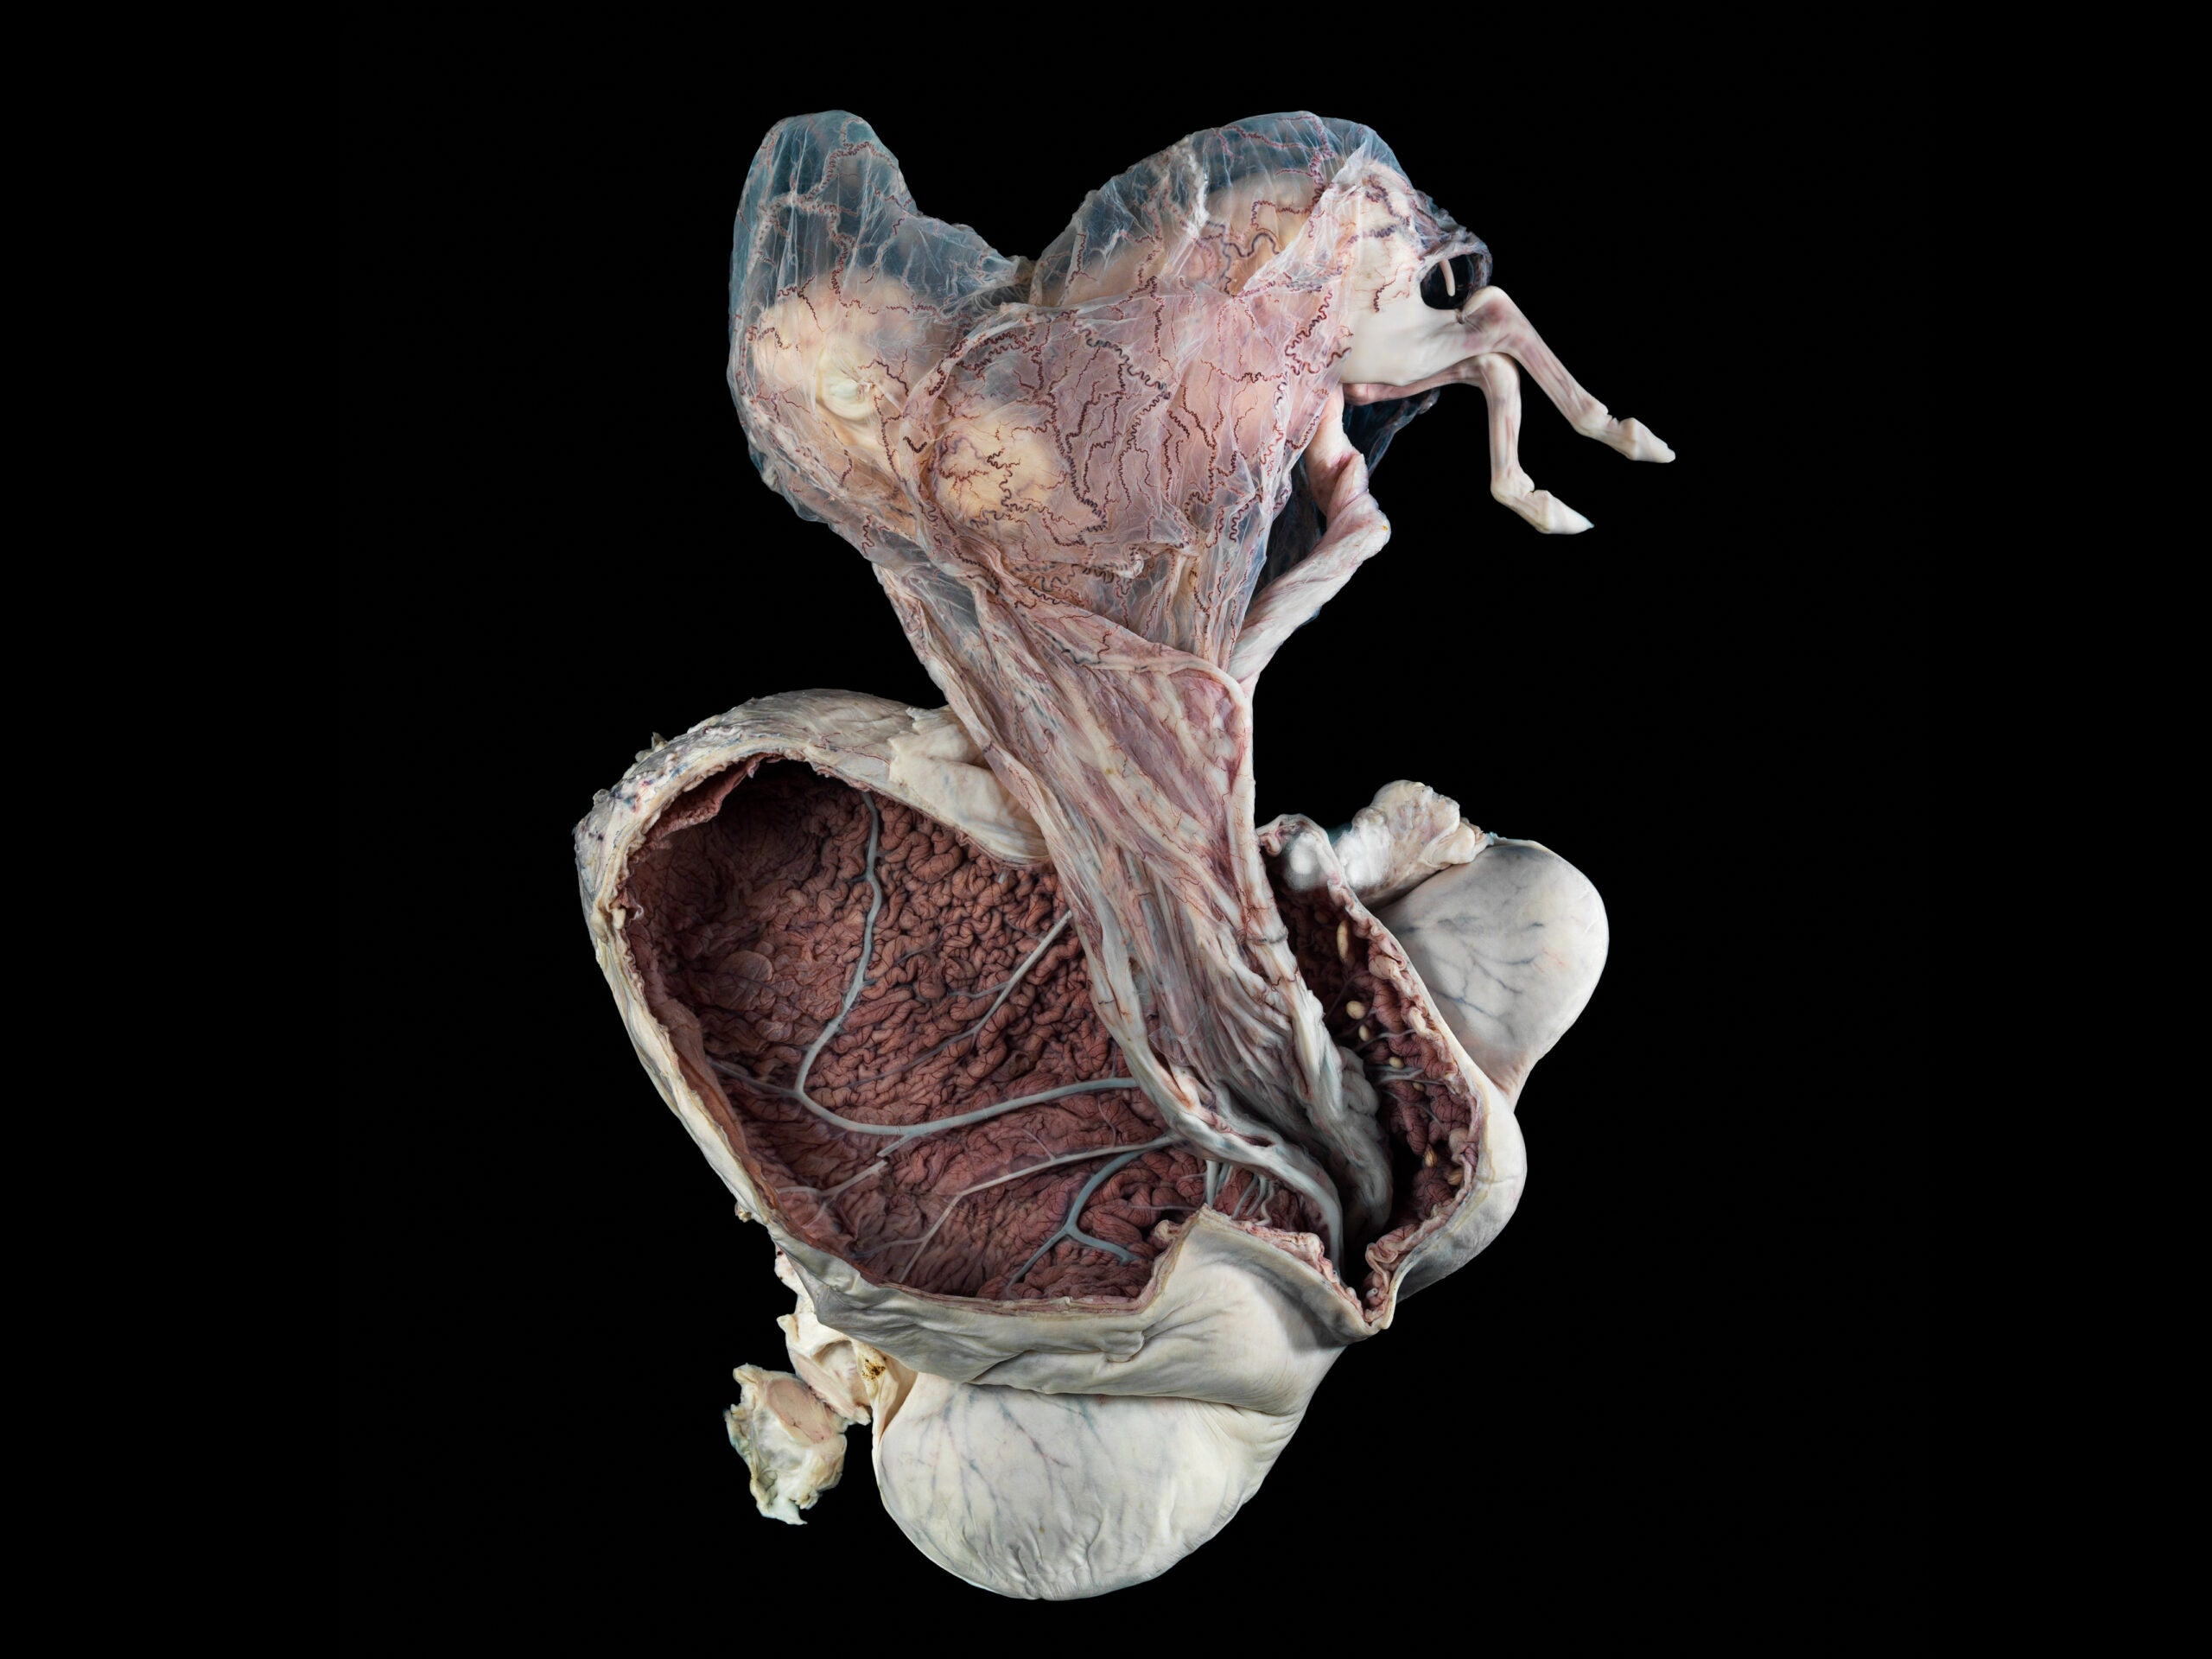 This Photo Of A Pregnant Pony Uterus Just Won A Wellcome Award